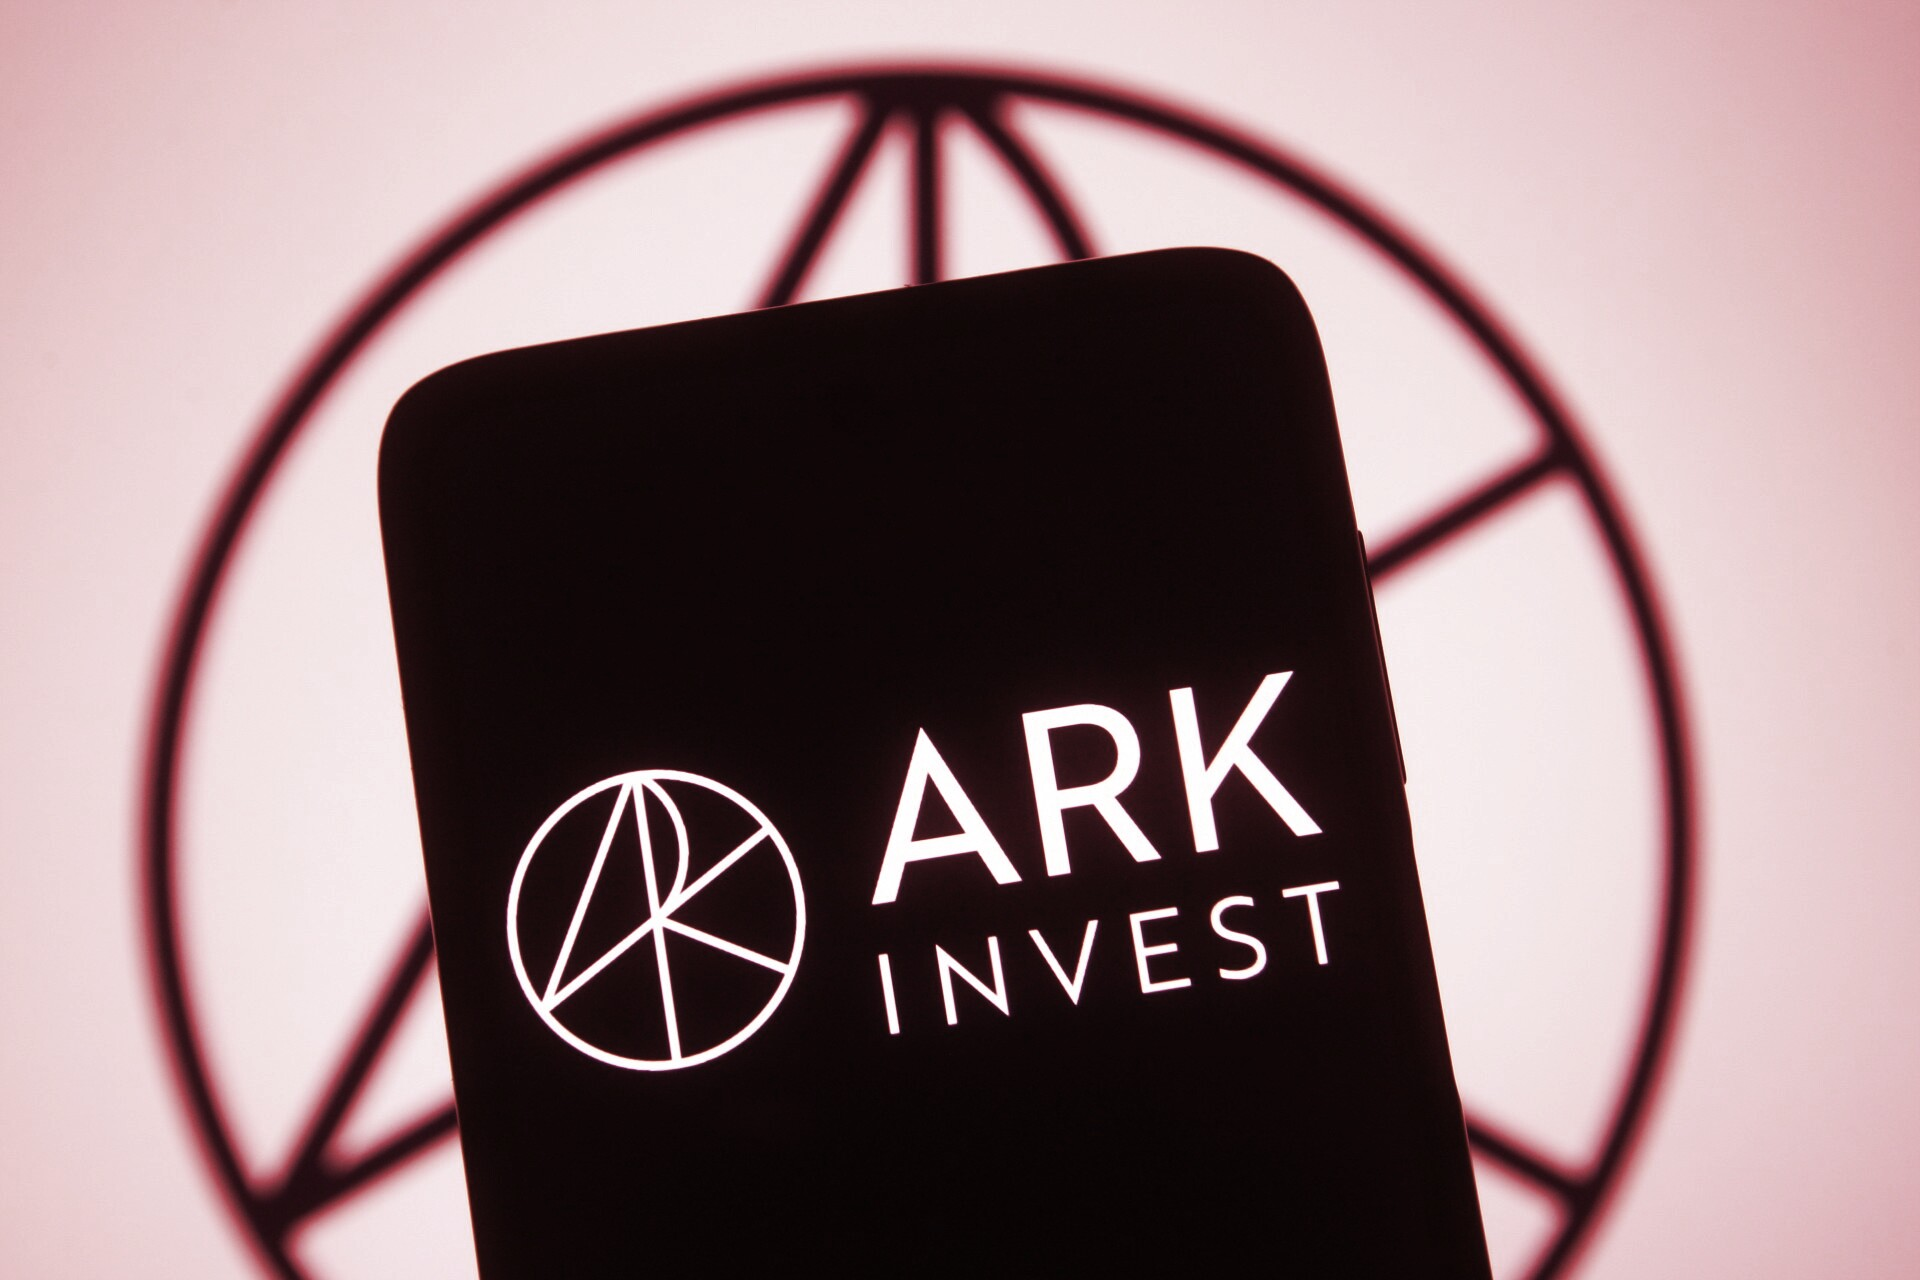 Cathie Wood's ARK Invest Joins the Bitcoin ETF Race